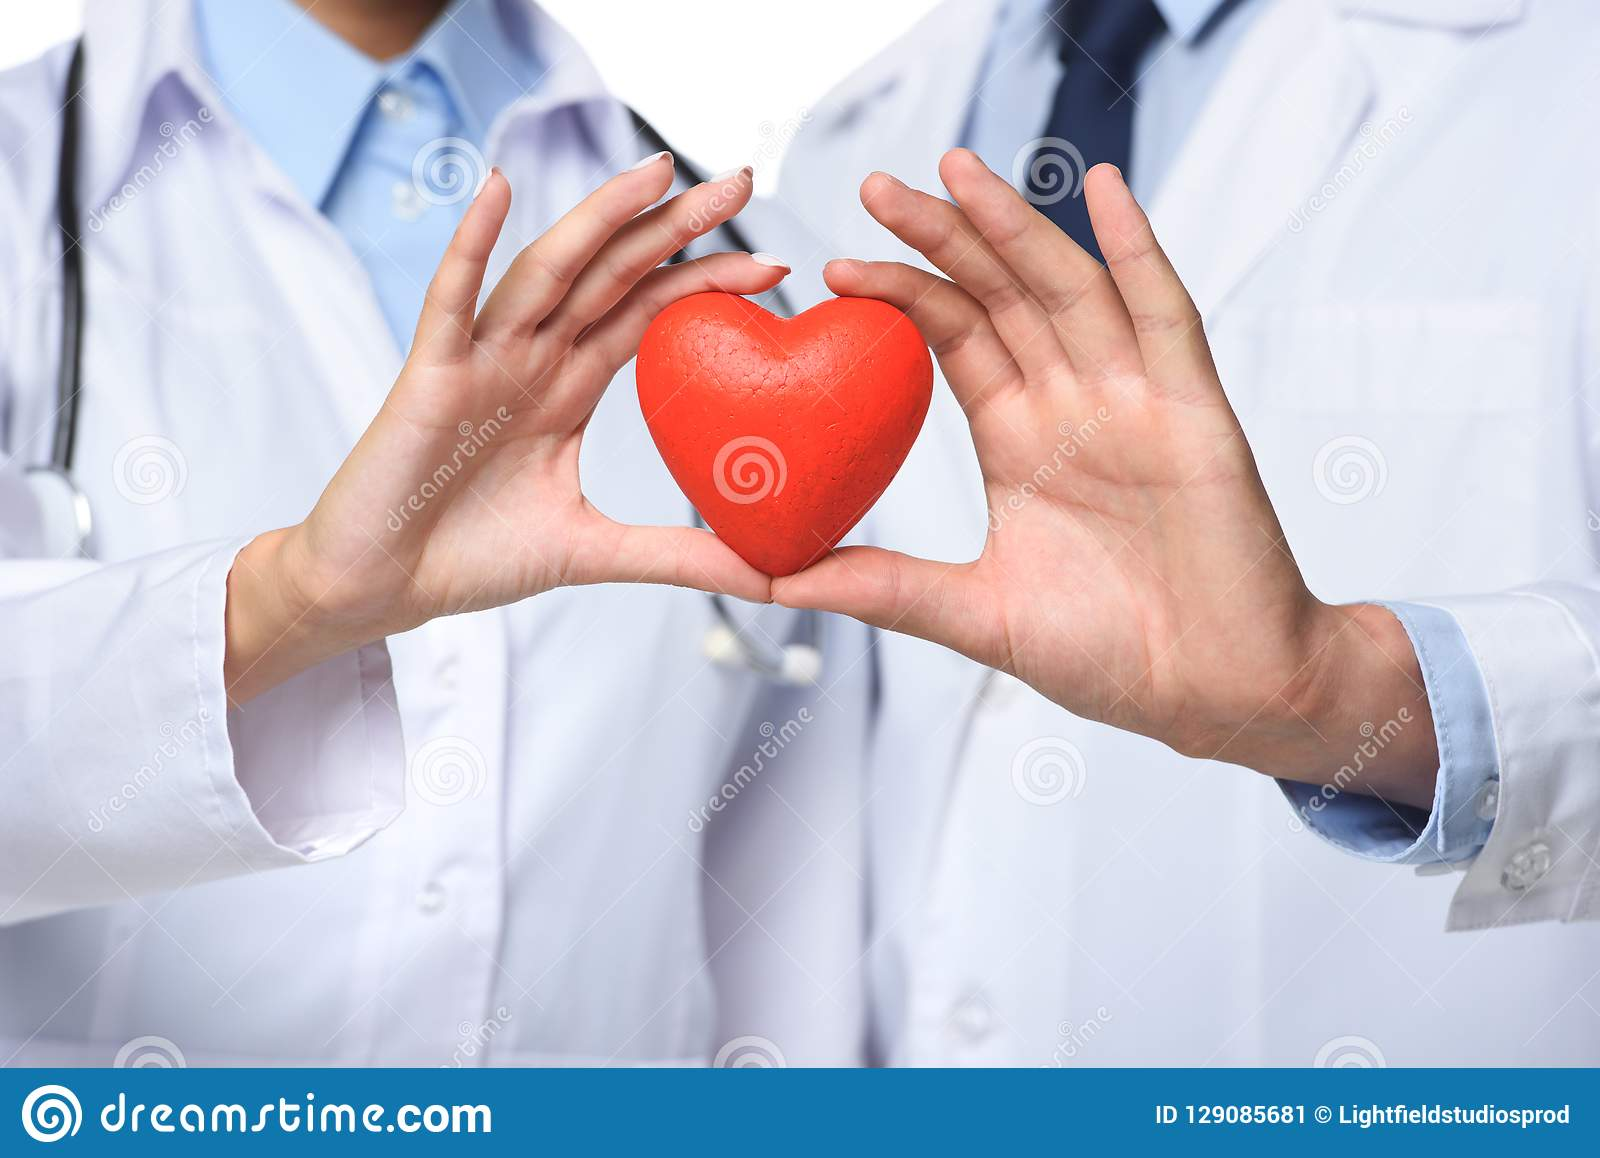 partial view of two doctors holding red heart in hands